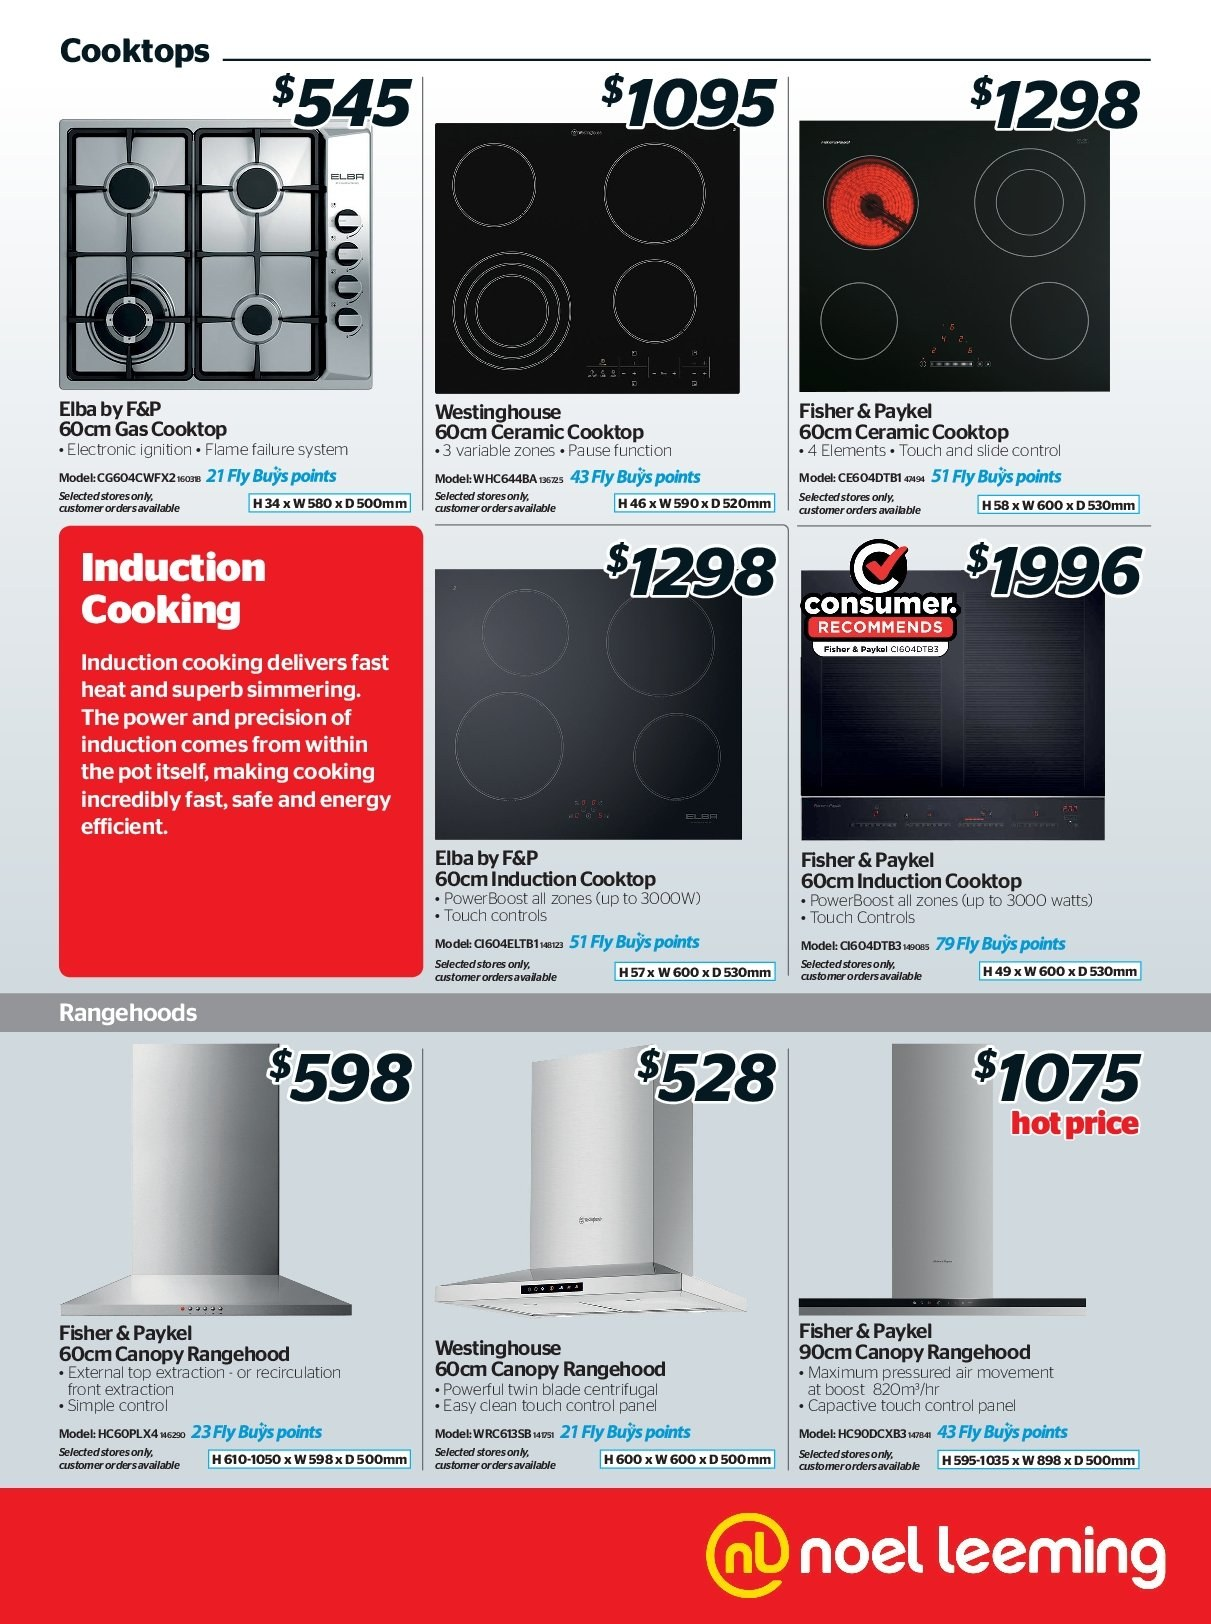 Noel Leeming mailer - 16.05.2018 - 29.05.2018 - Sales products - canopy, cooktop, induction cooktop, pot, blade. Page 13.